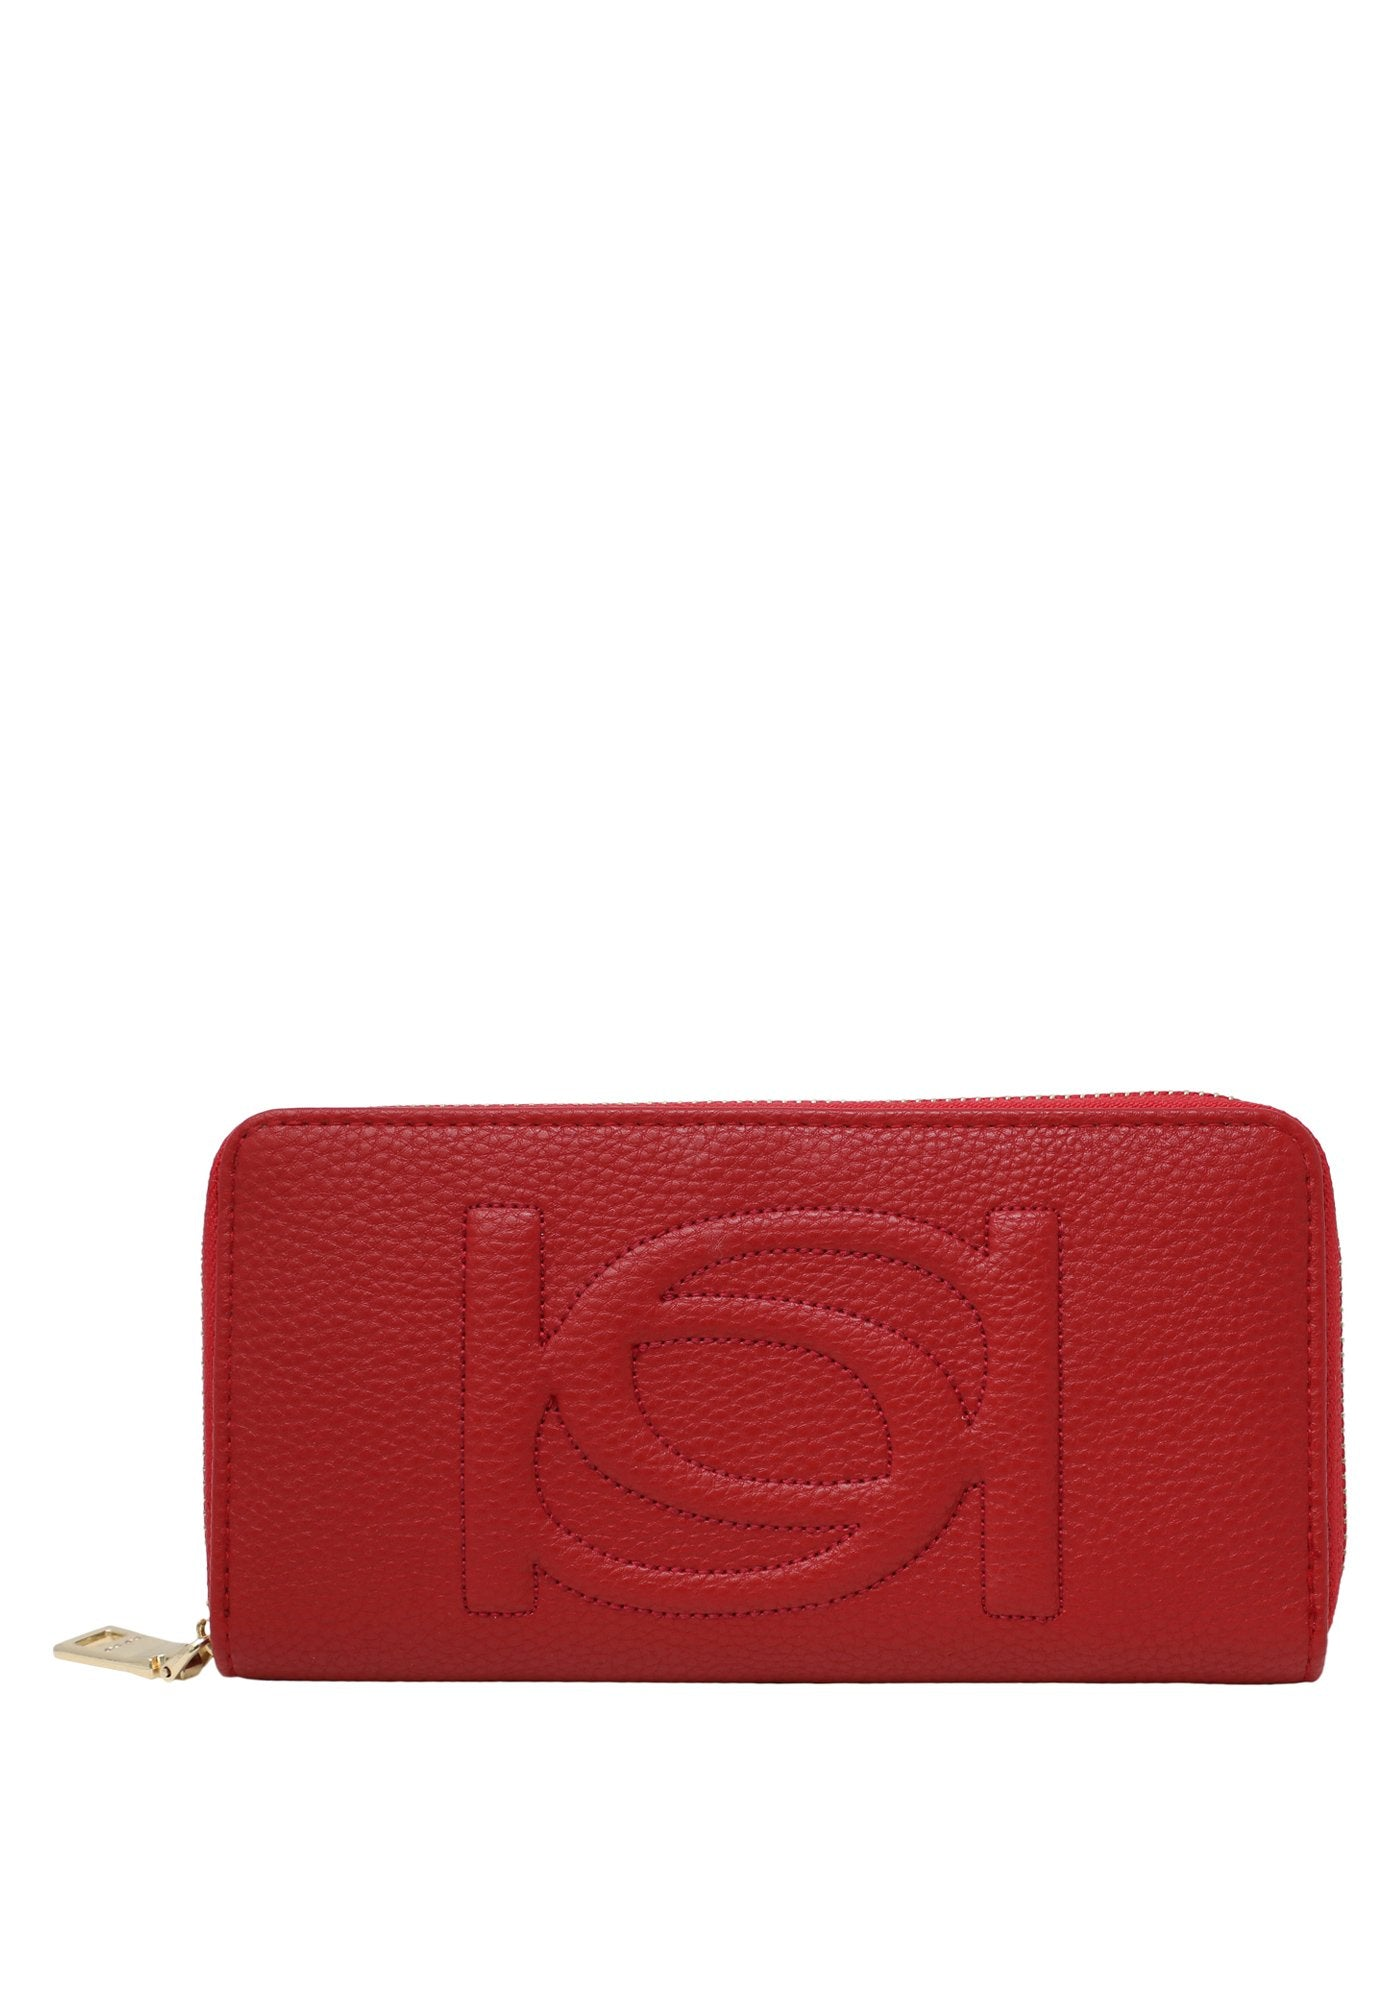 Bebe Women's Poppy Zip Around Wallet, Size OS in Red Polyurethane